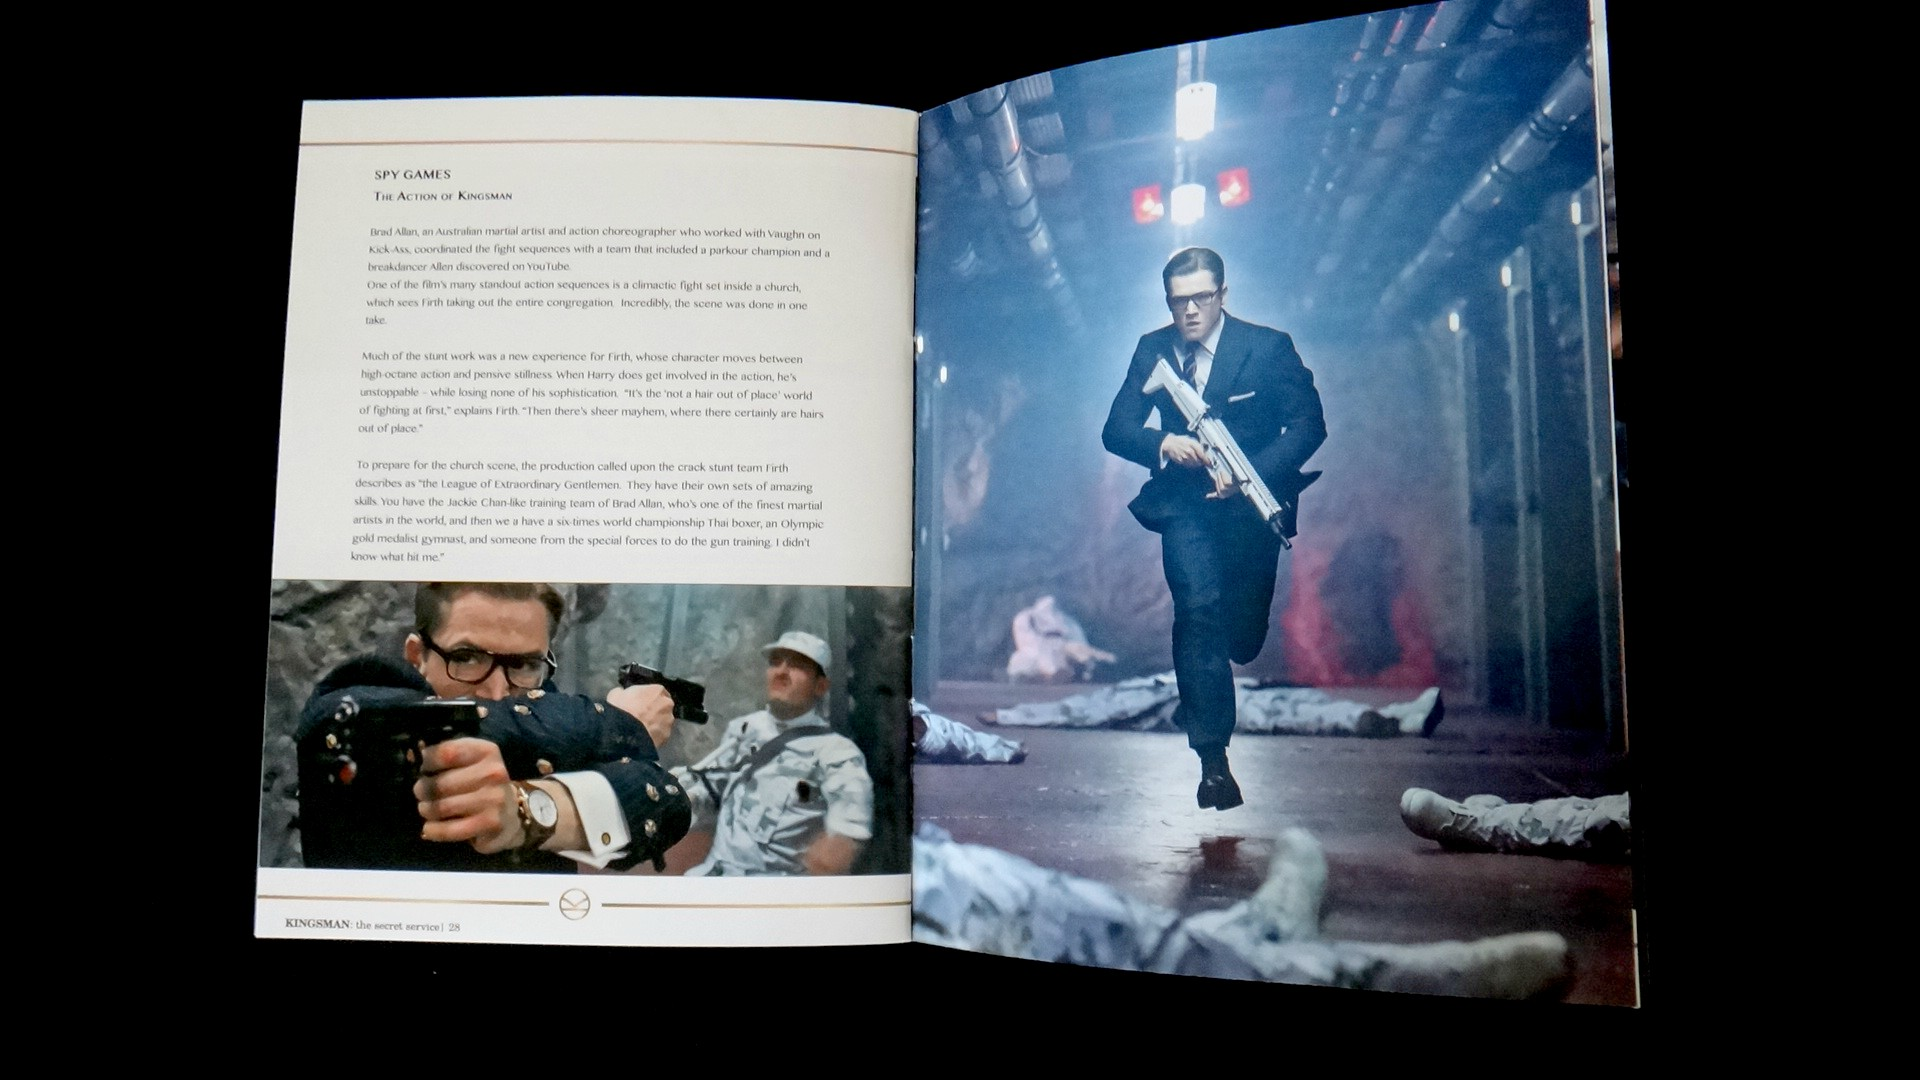 kingsman photo book.jpg